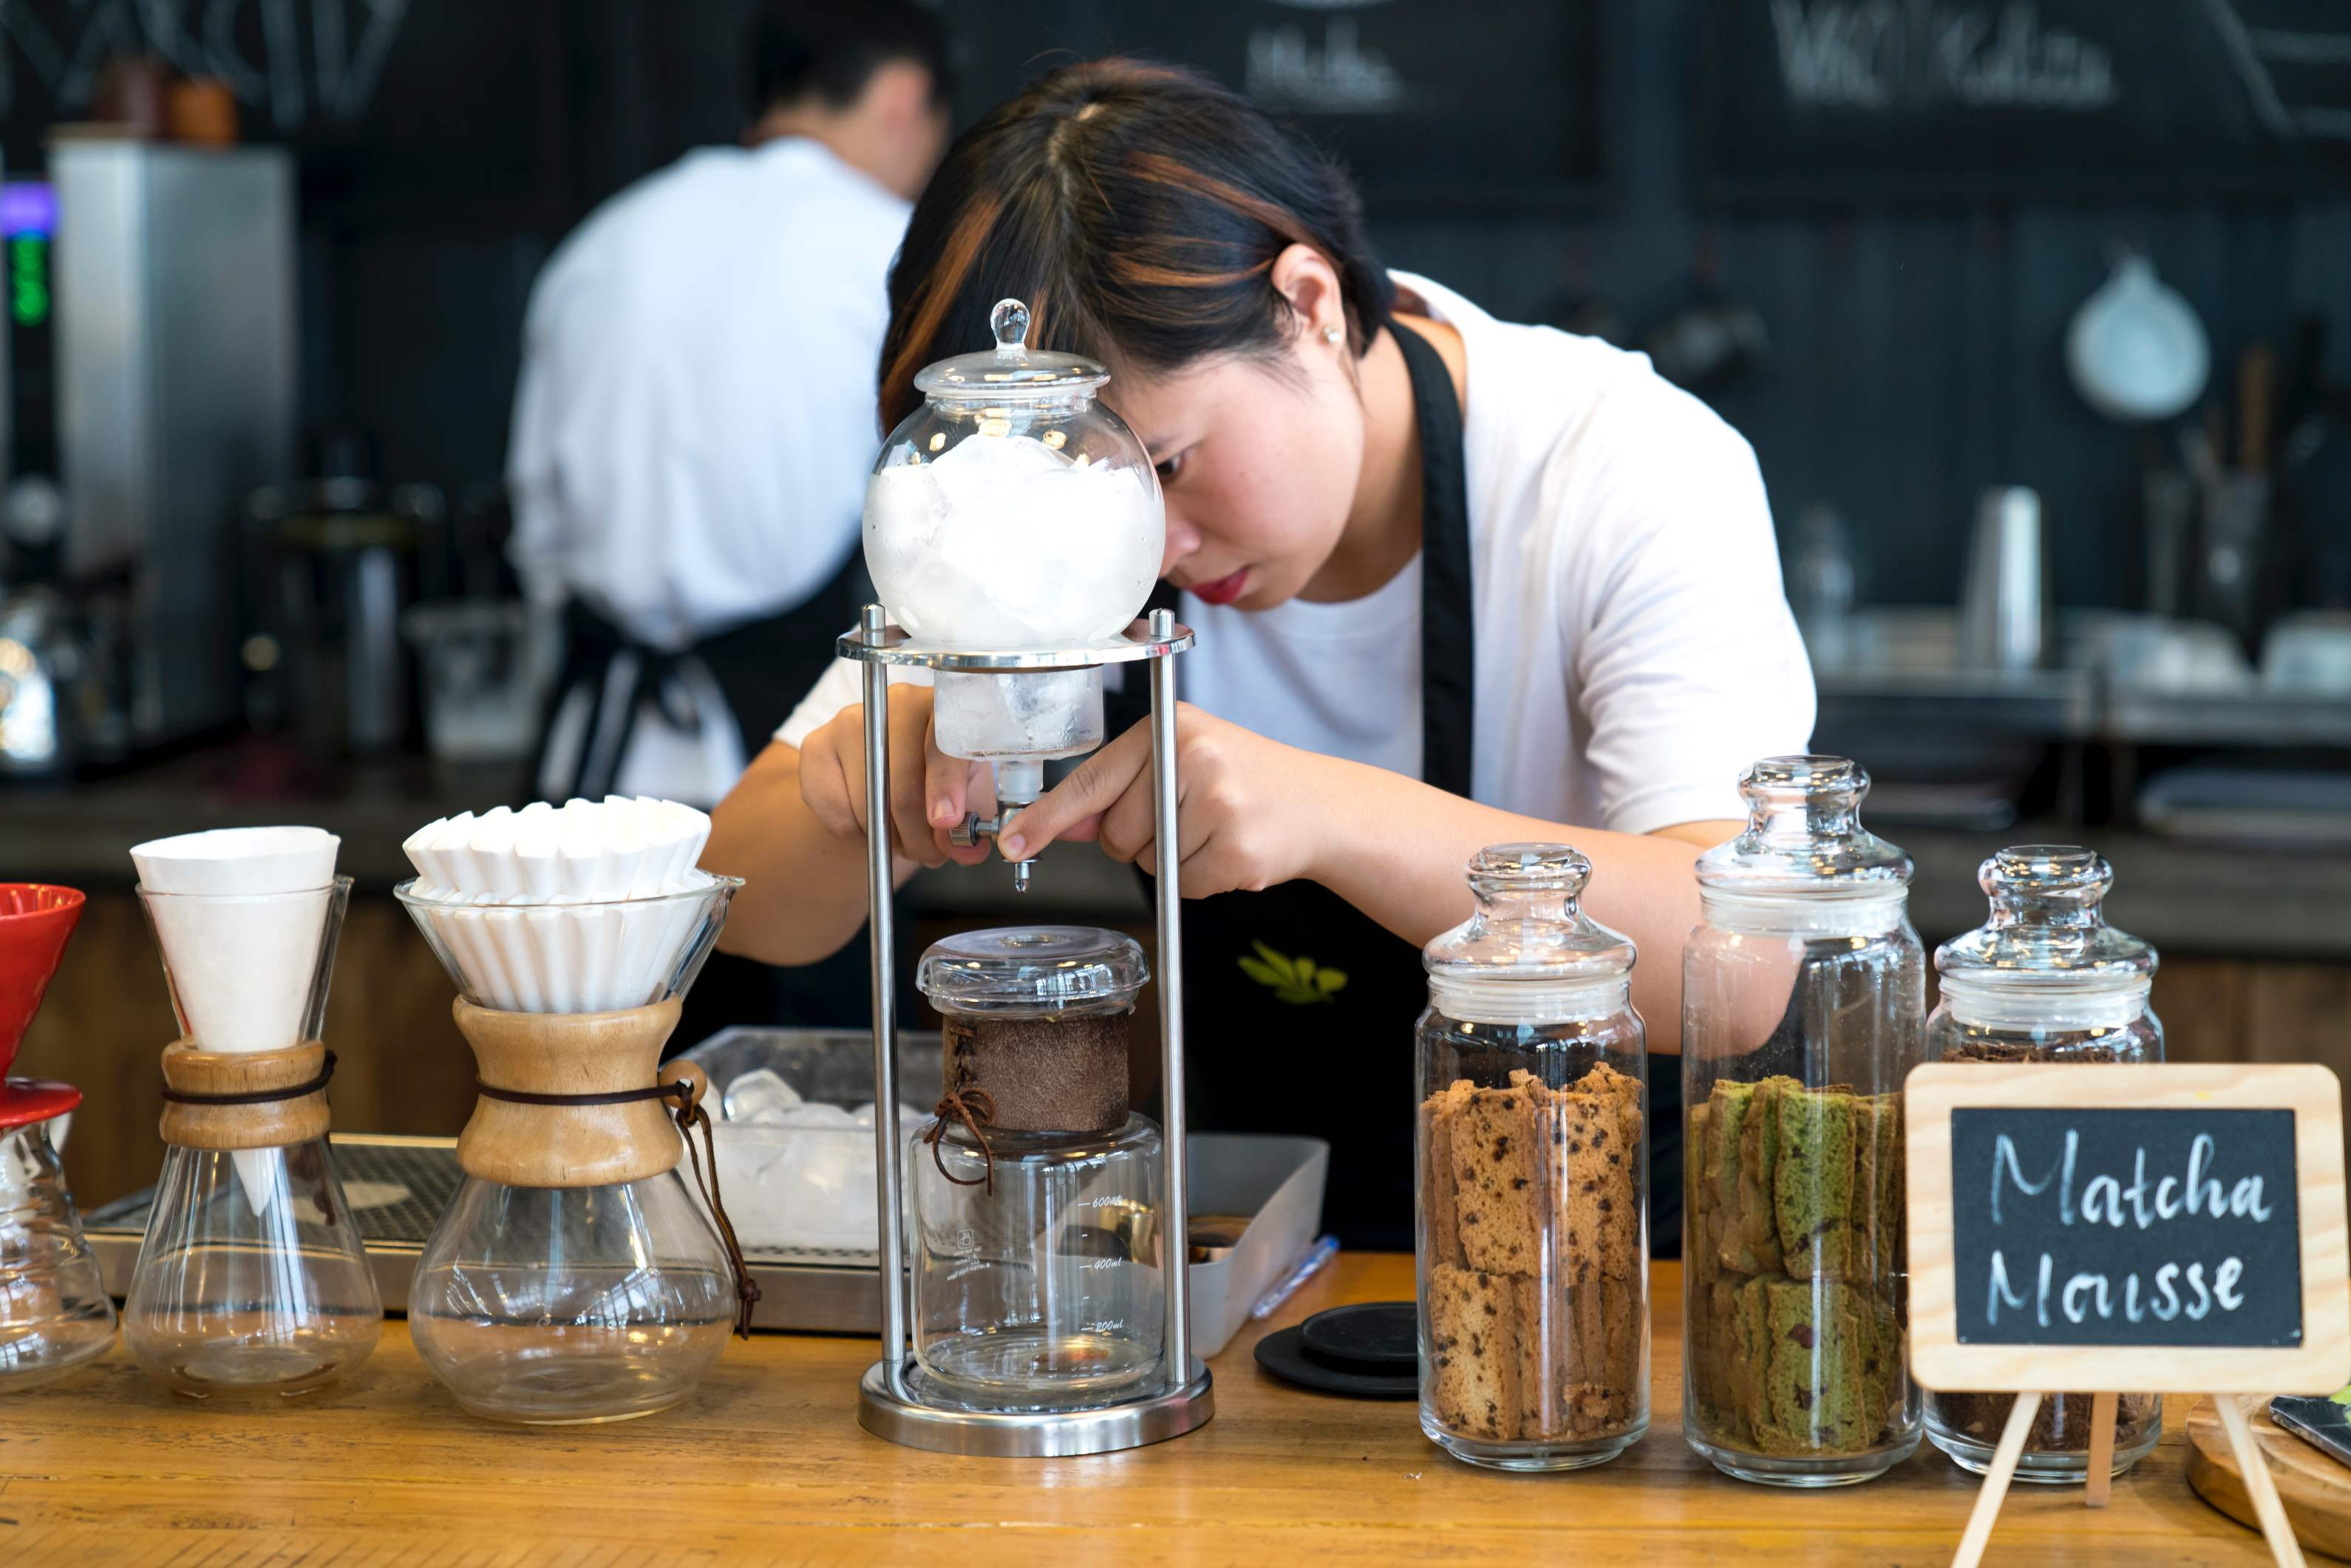 5 Pro Tips to become a great Barista with ease